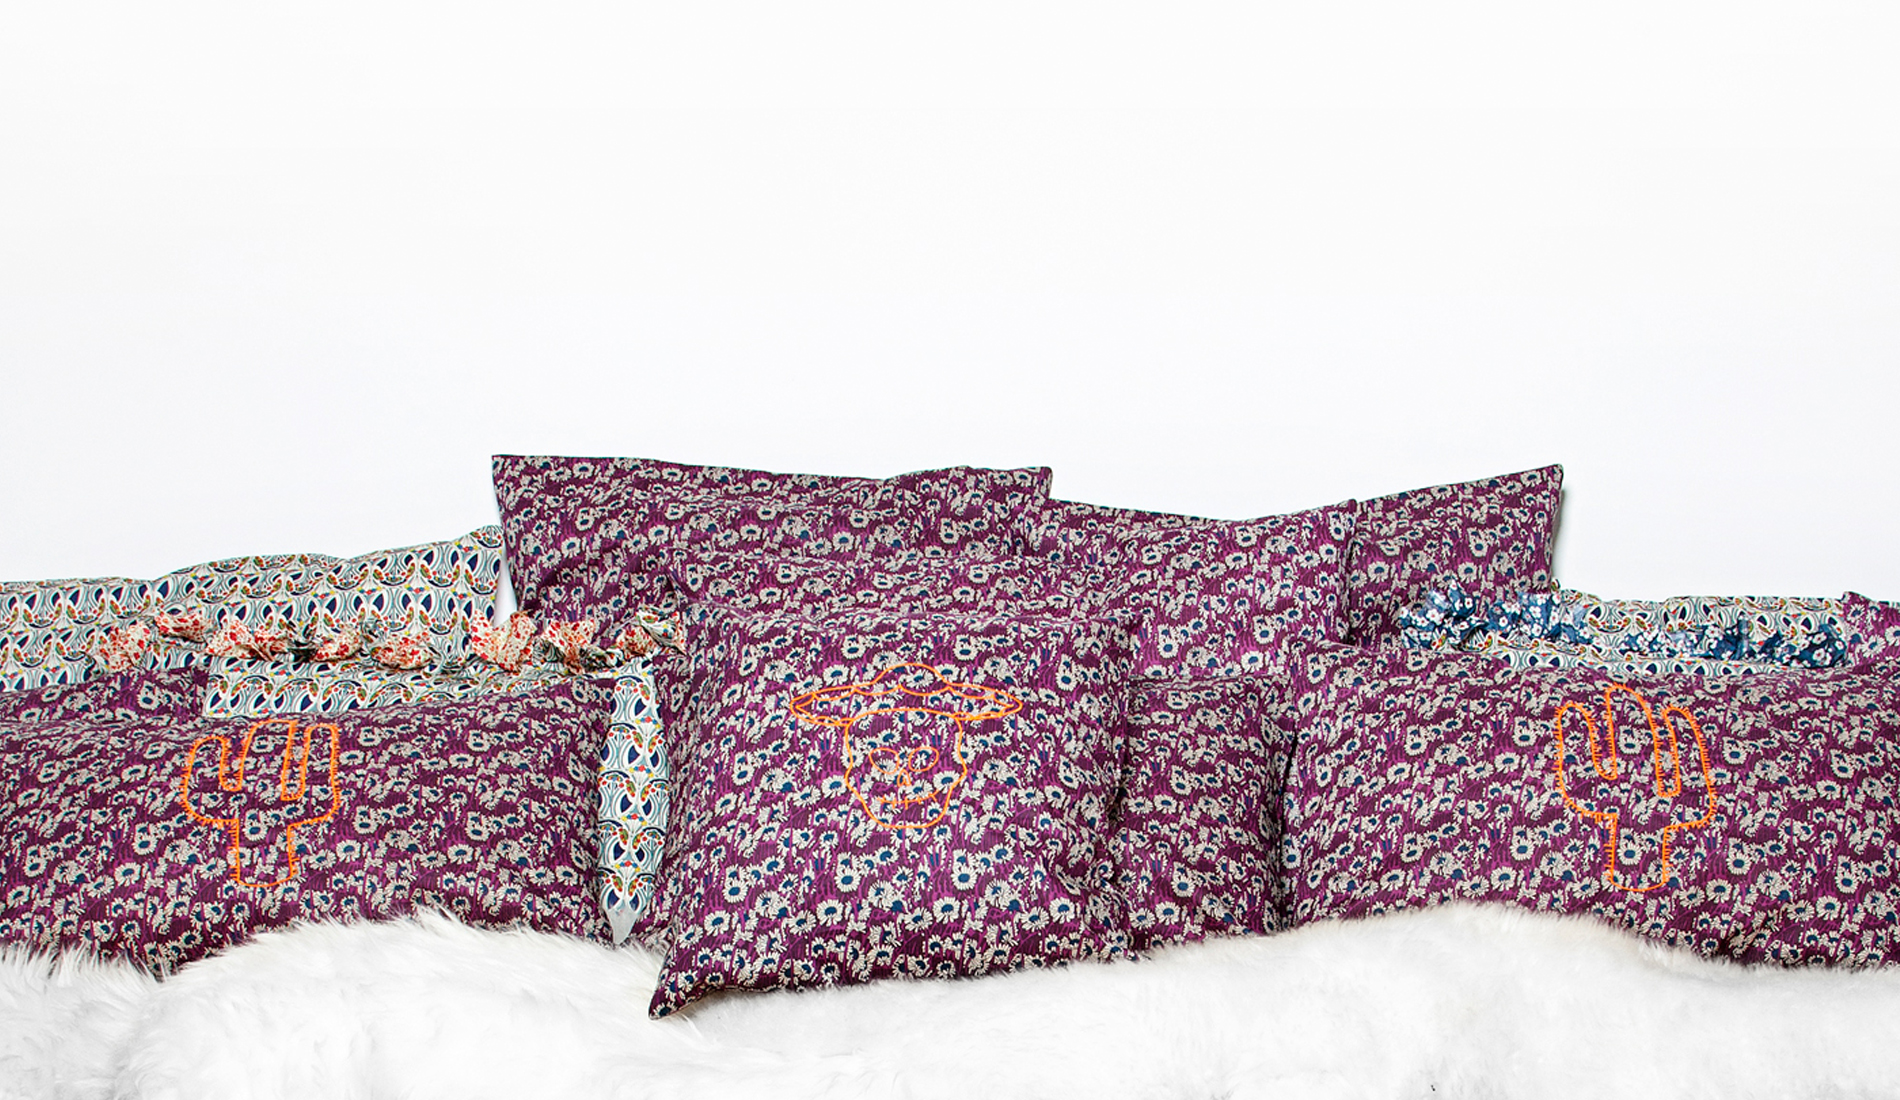 joli ensemble de coussins en coton imprimé liberty made in france-tiliah design paris